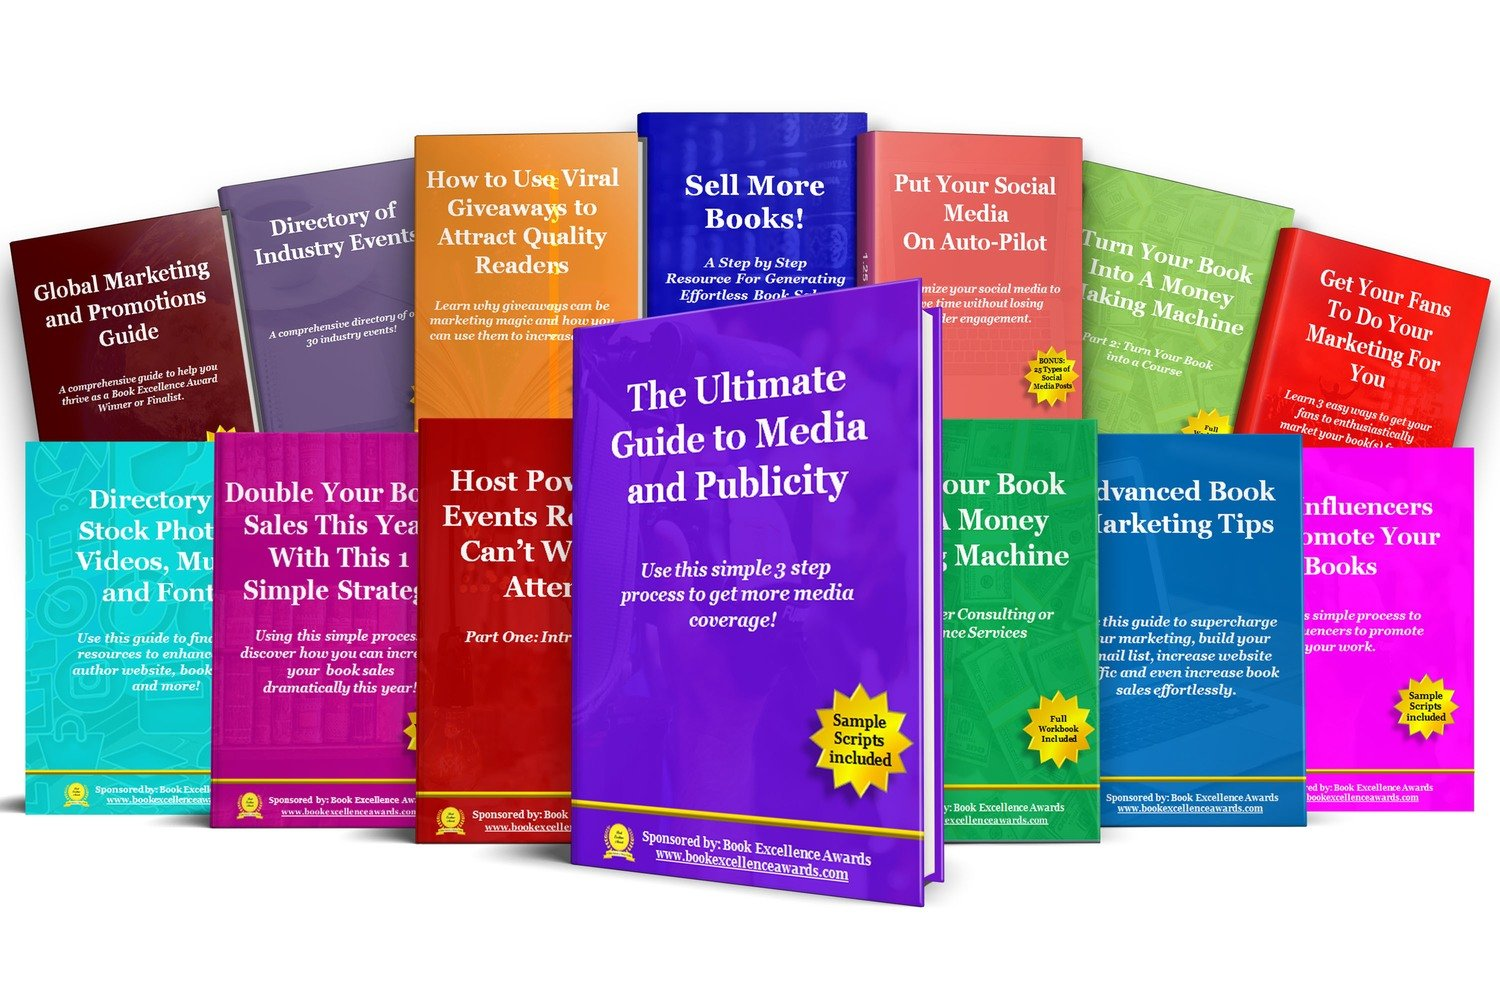 Access to a Library of Book Marketing Courses and Guides